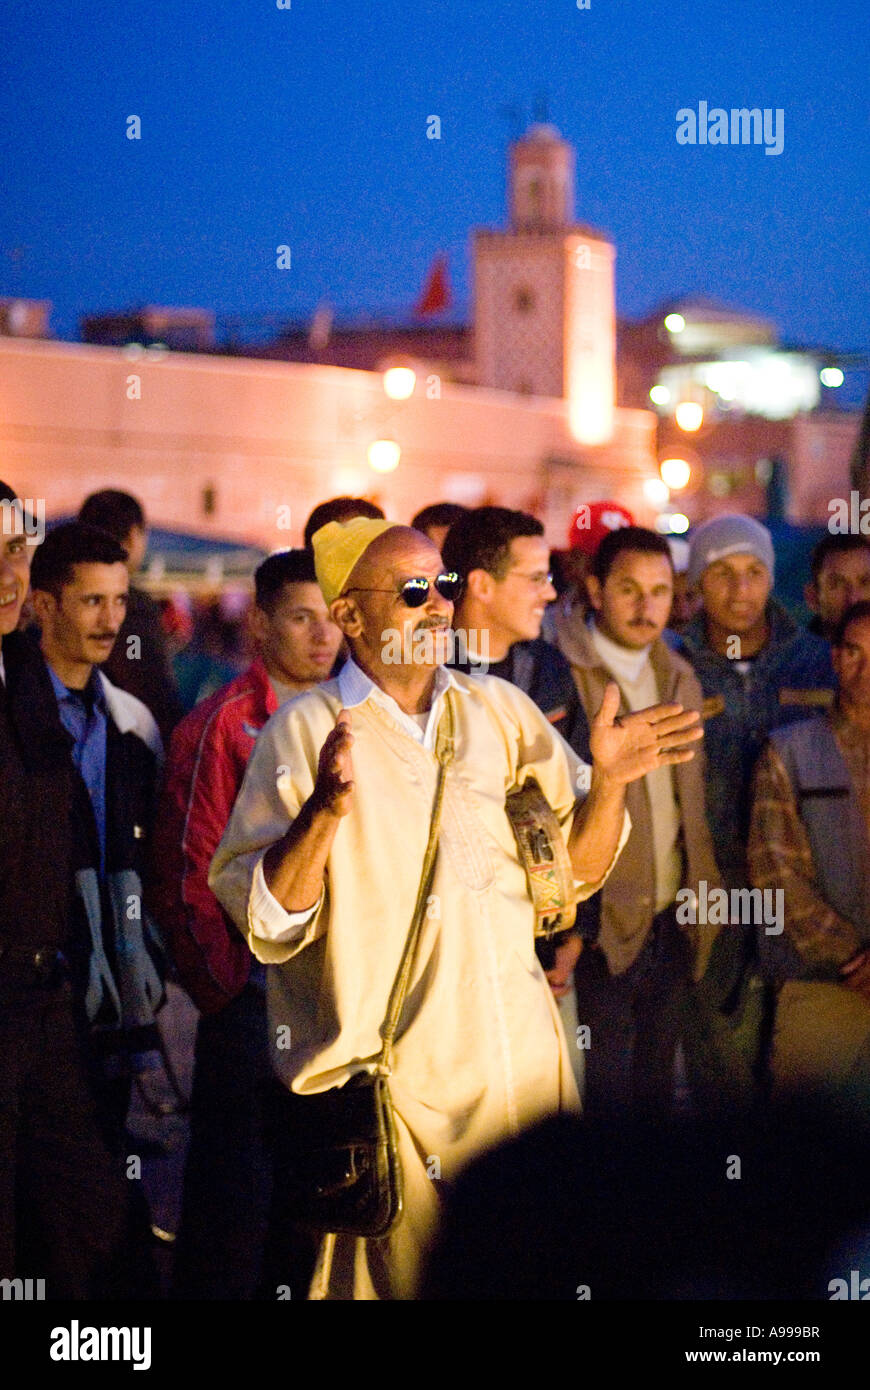 Crowd gathered around a popular storyteller and musician performing on the central square of Djemaa El Fna in Marrakesh - Stock Image